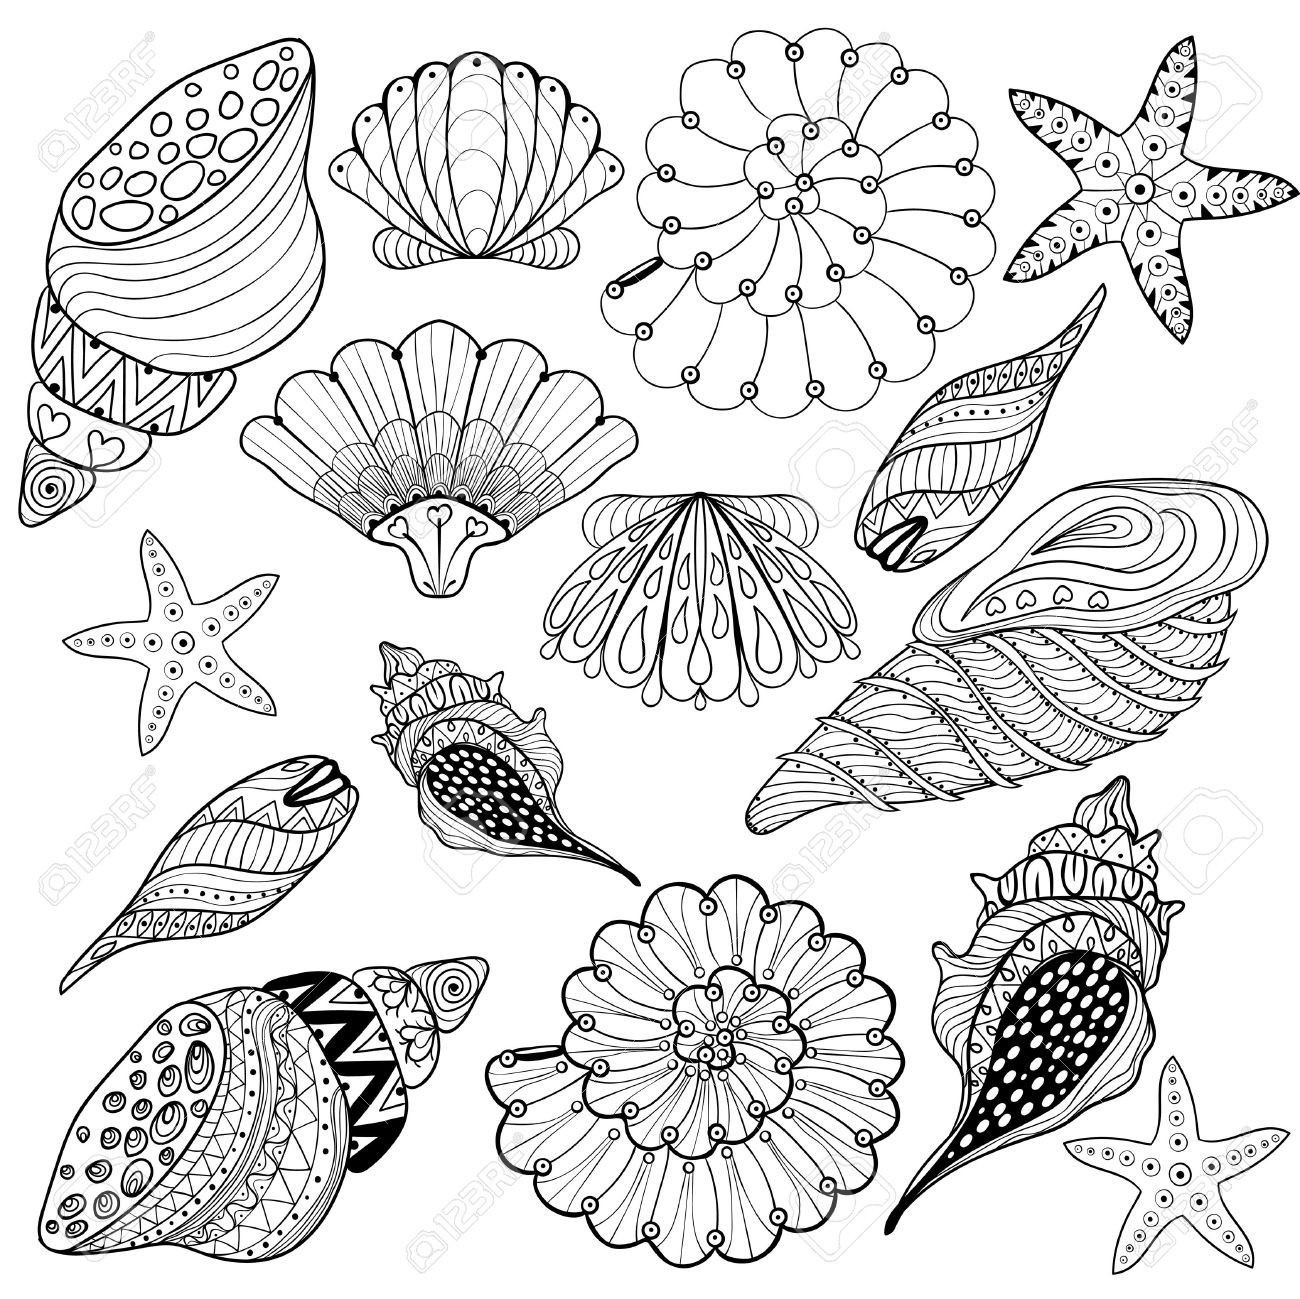 seashell coloring page shell coloring page sea shells clipart black and white coloring page seashell